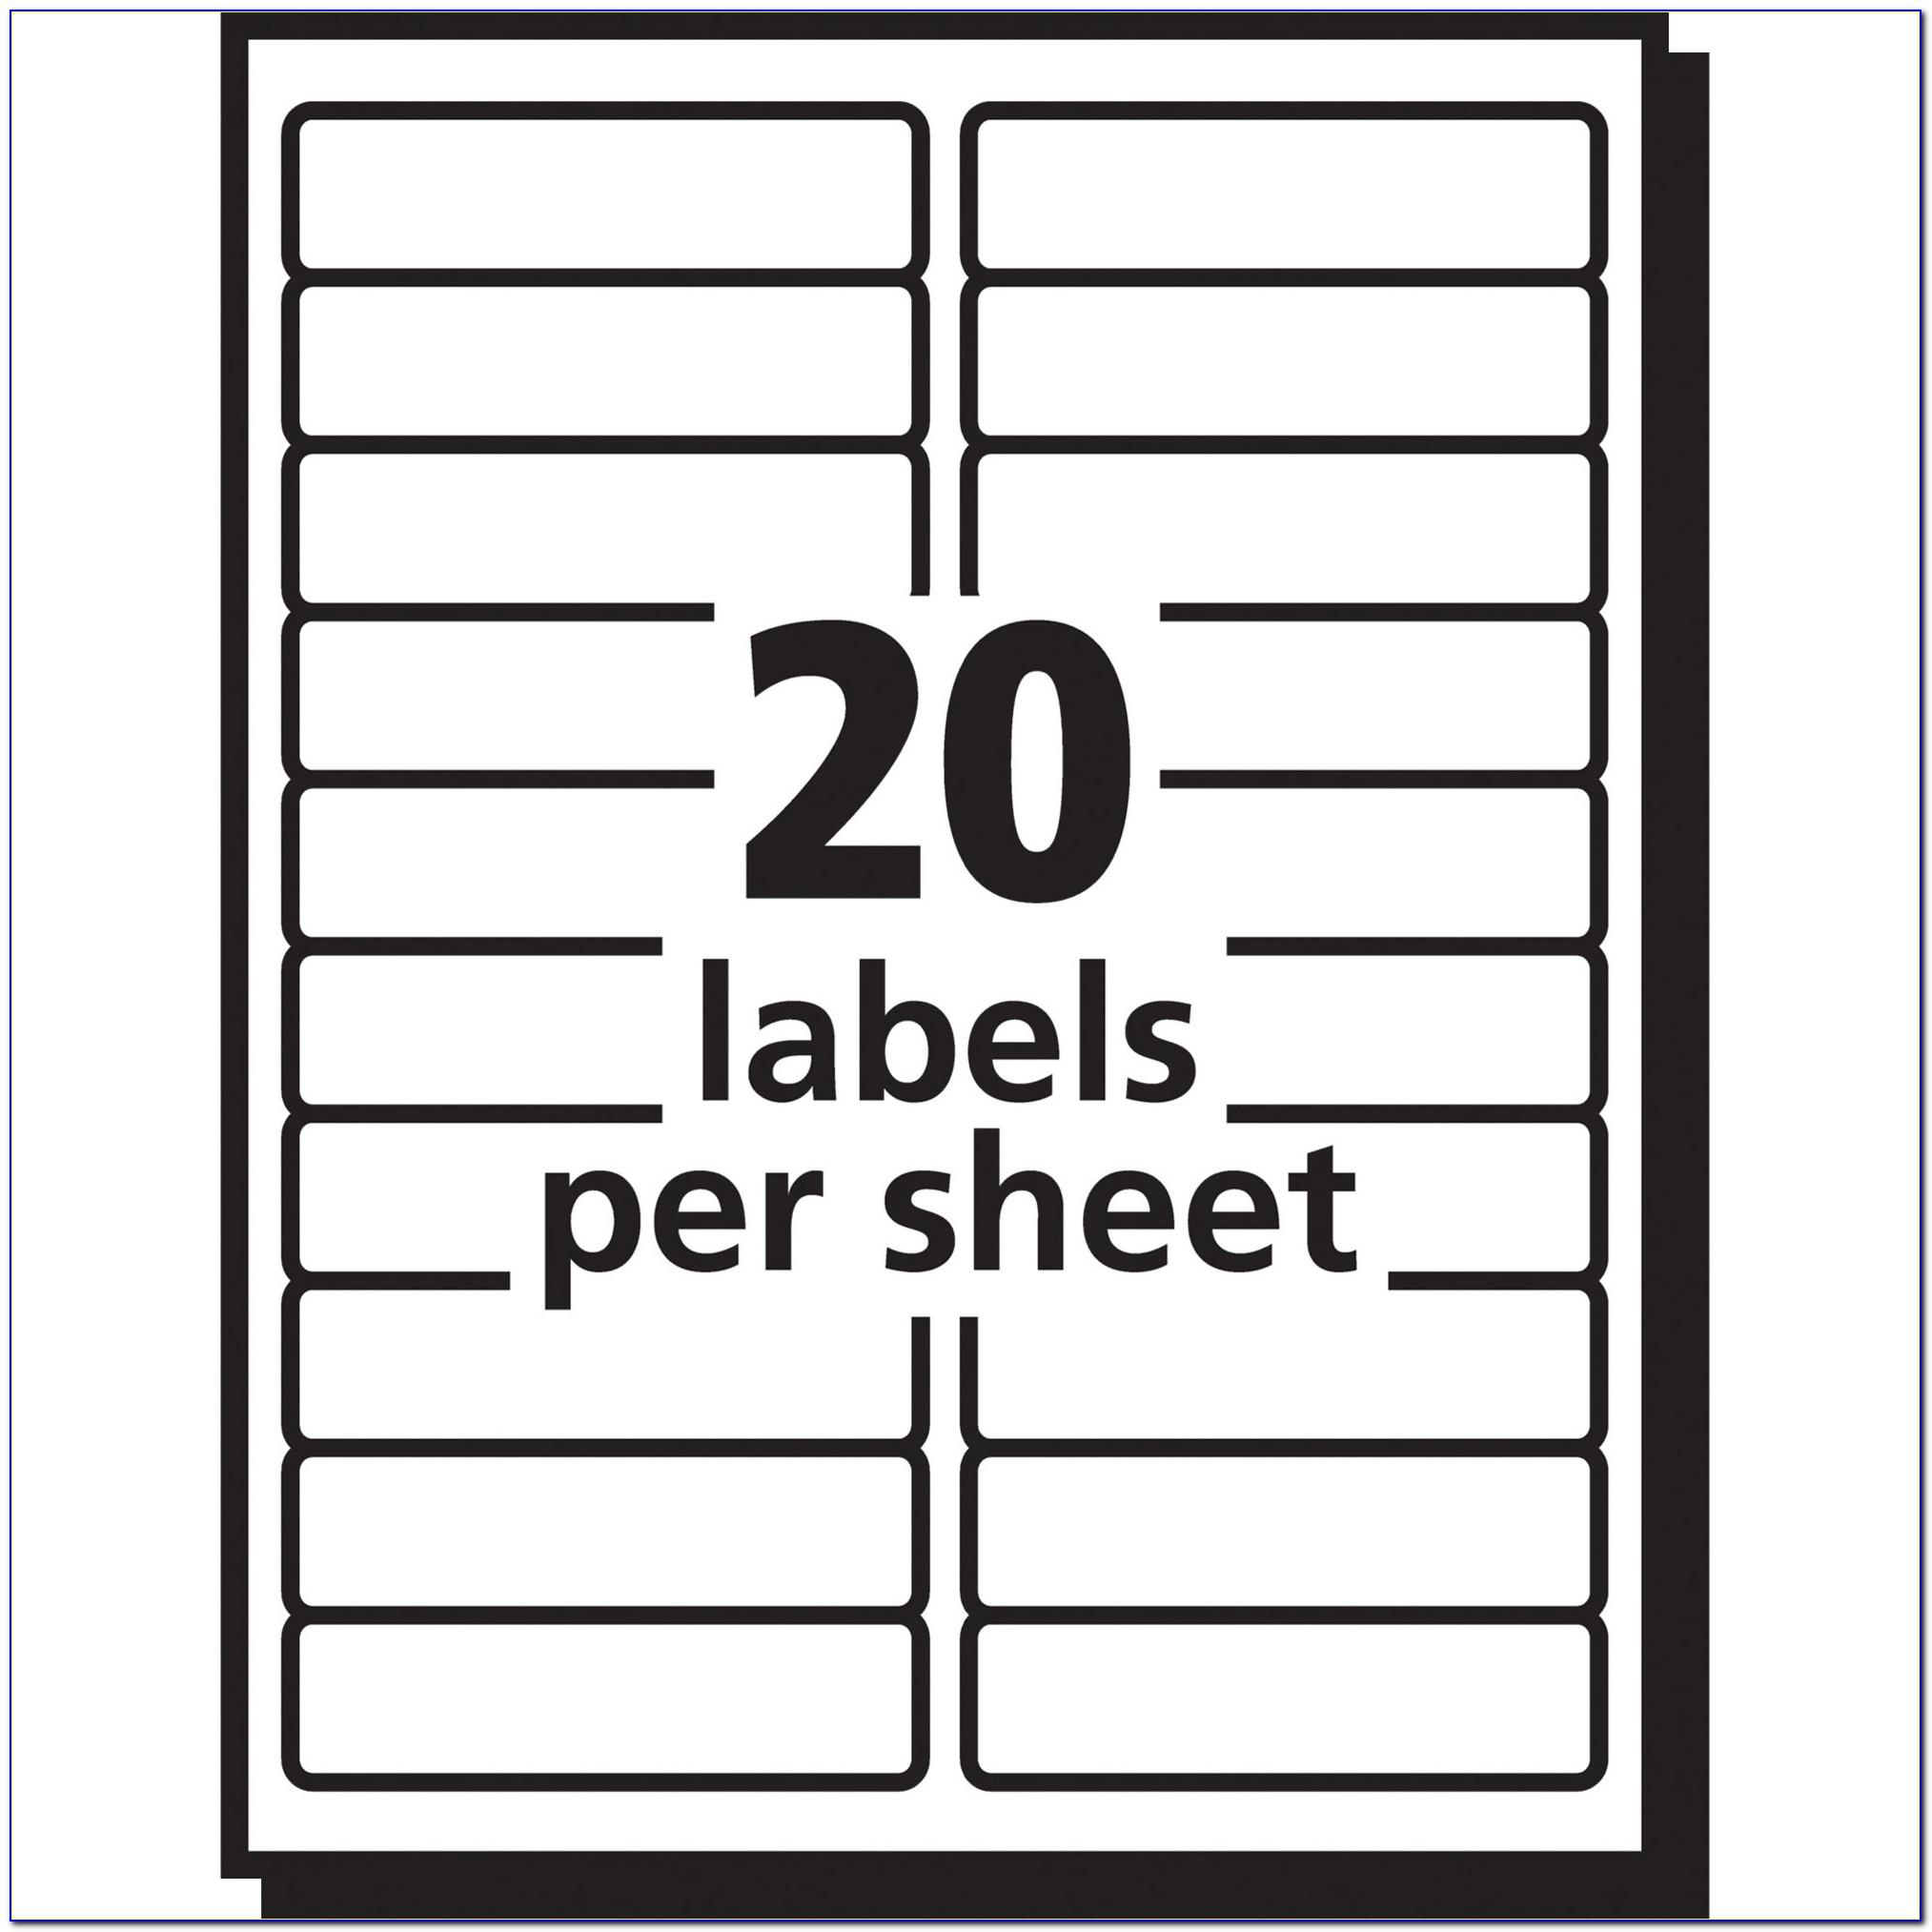 Avery 5160 Label Sheet Template